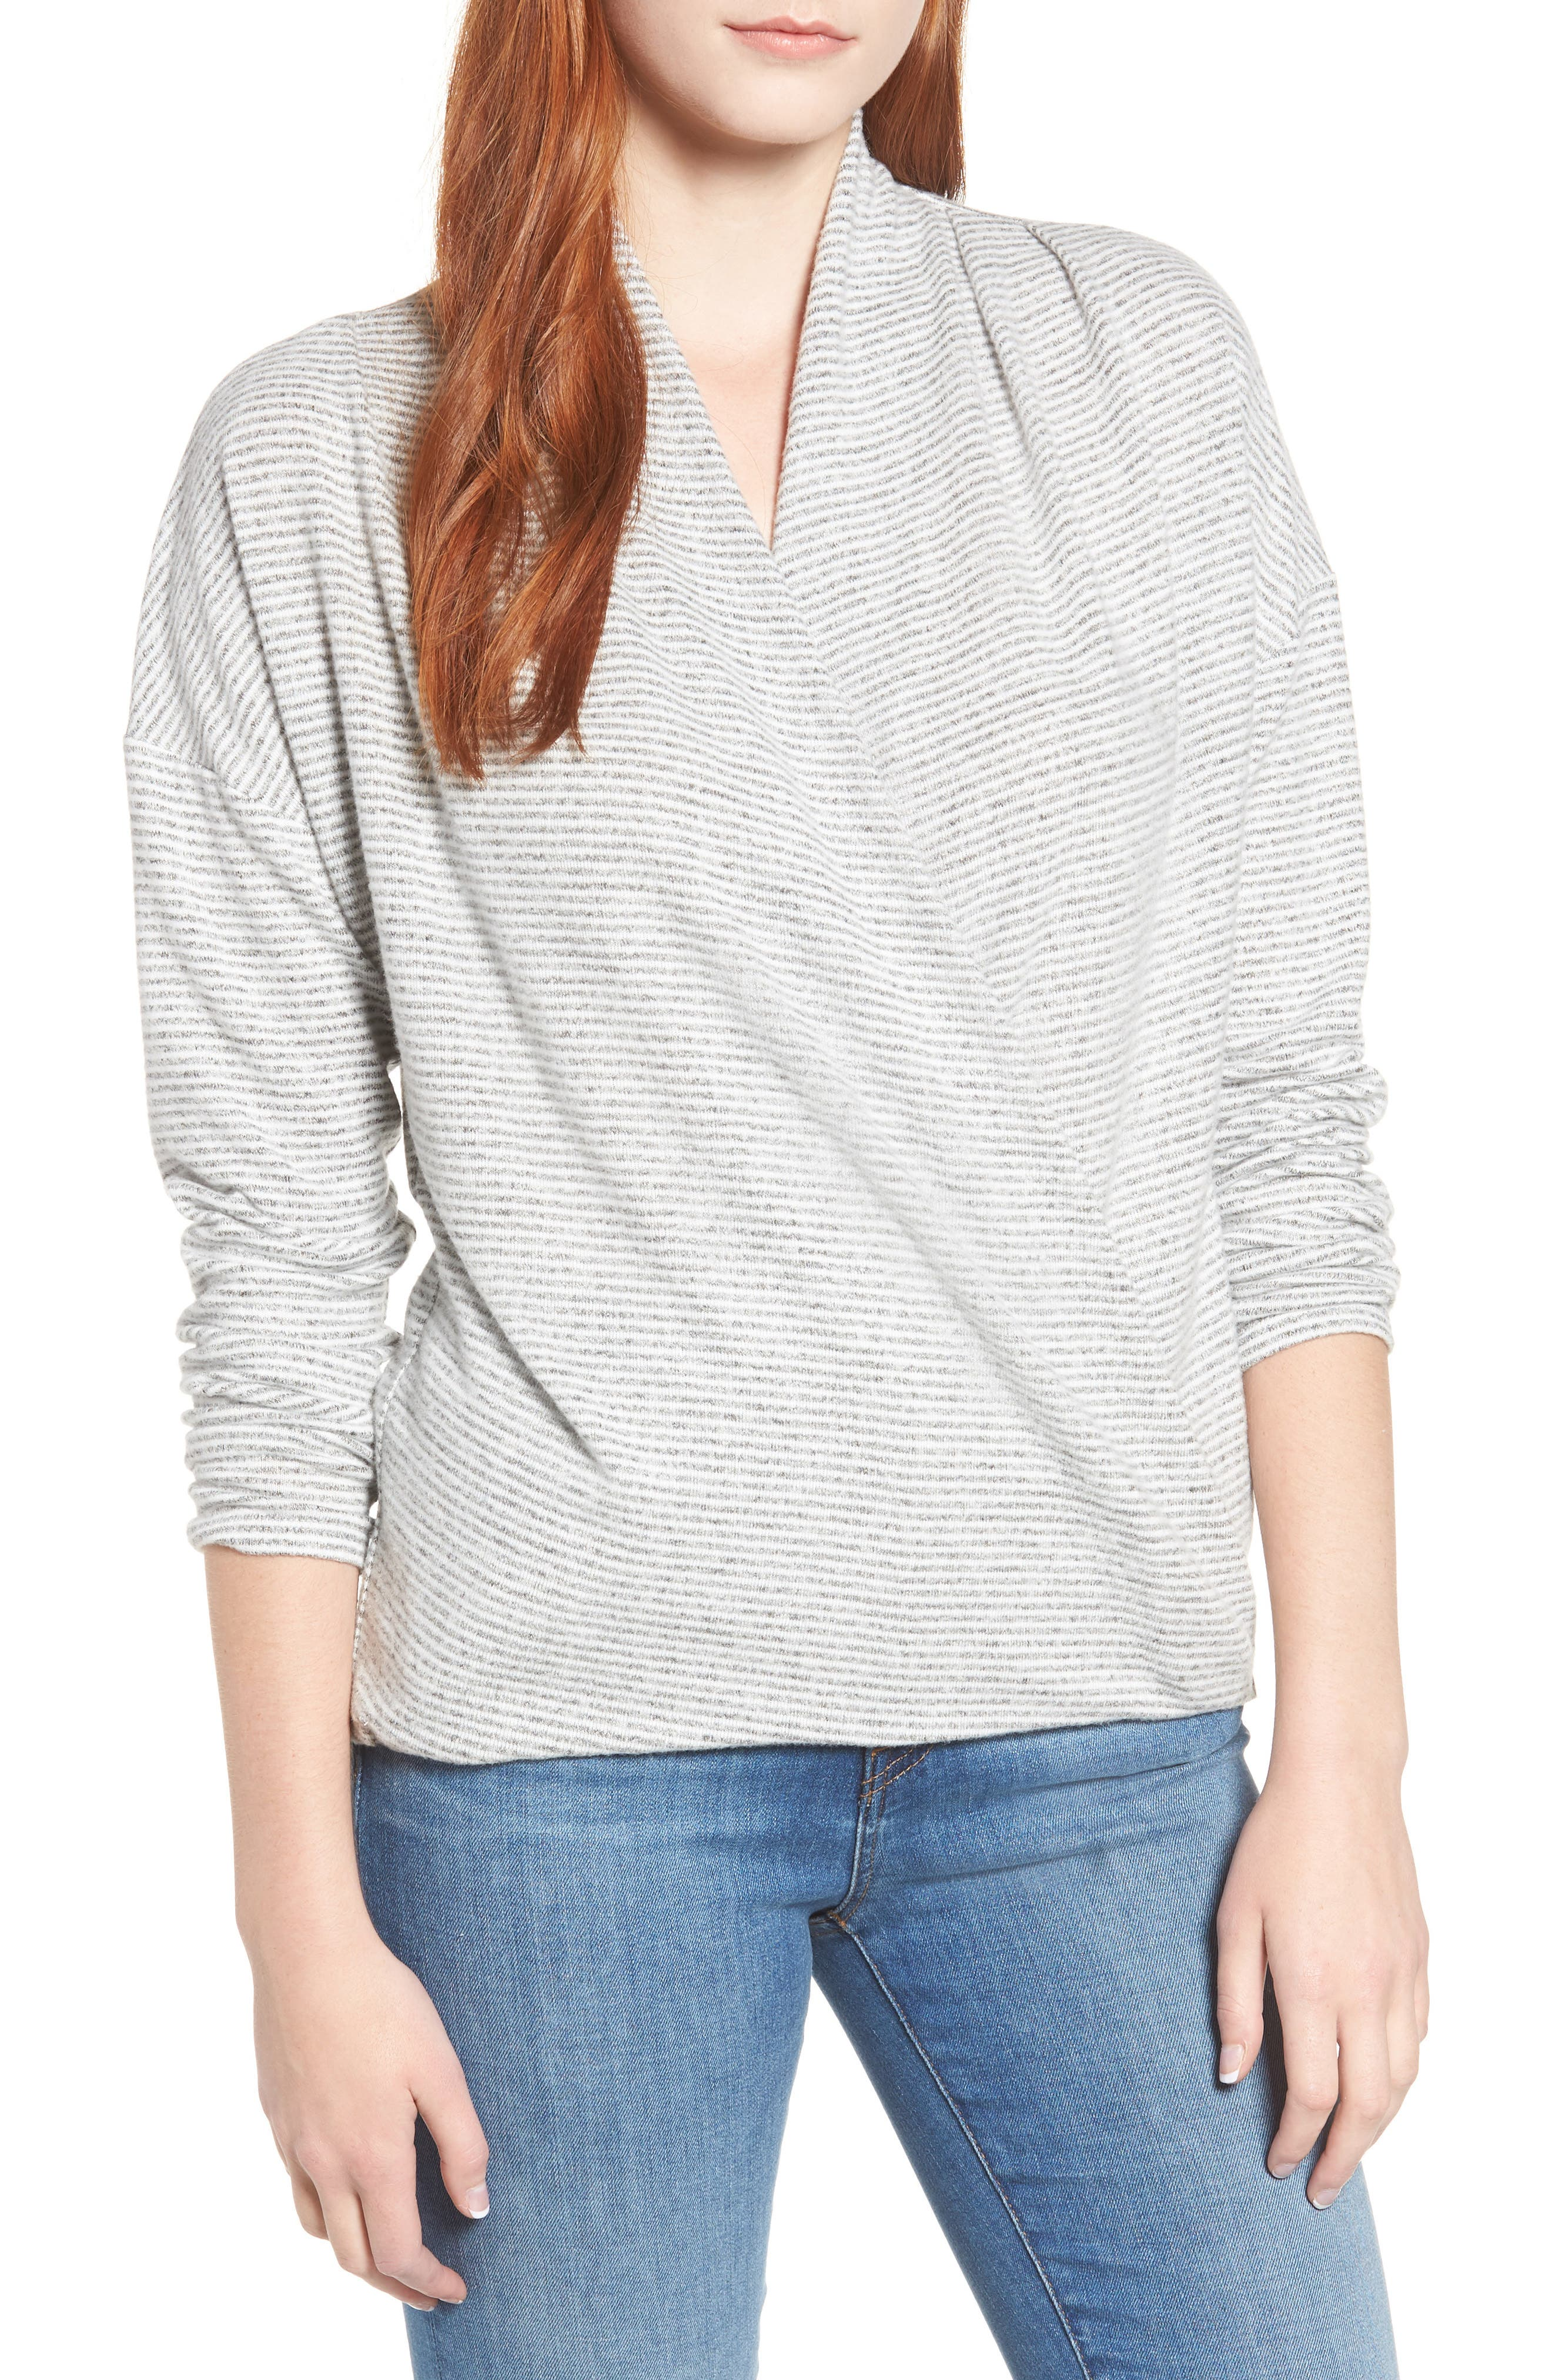 GIBSON x Living in Yellow Diana Cozy Knit Wrap Top, Main, color, GREY/ IVORY